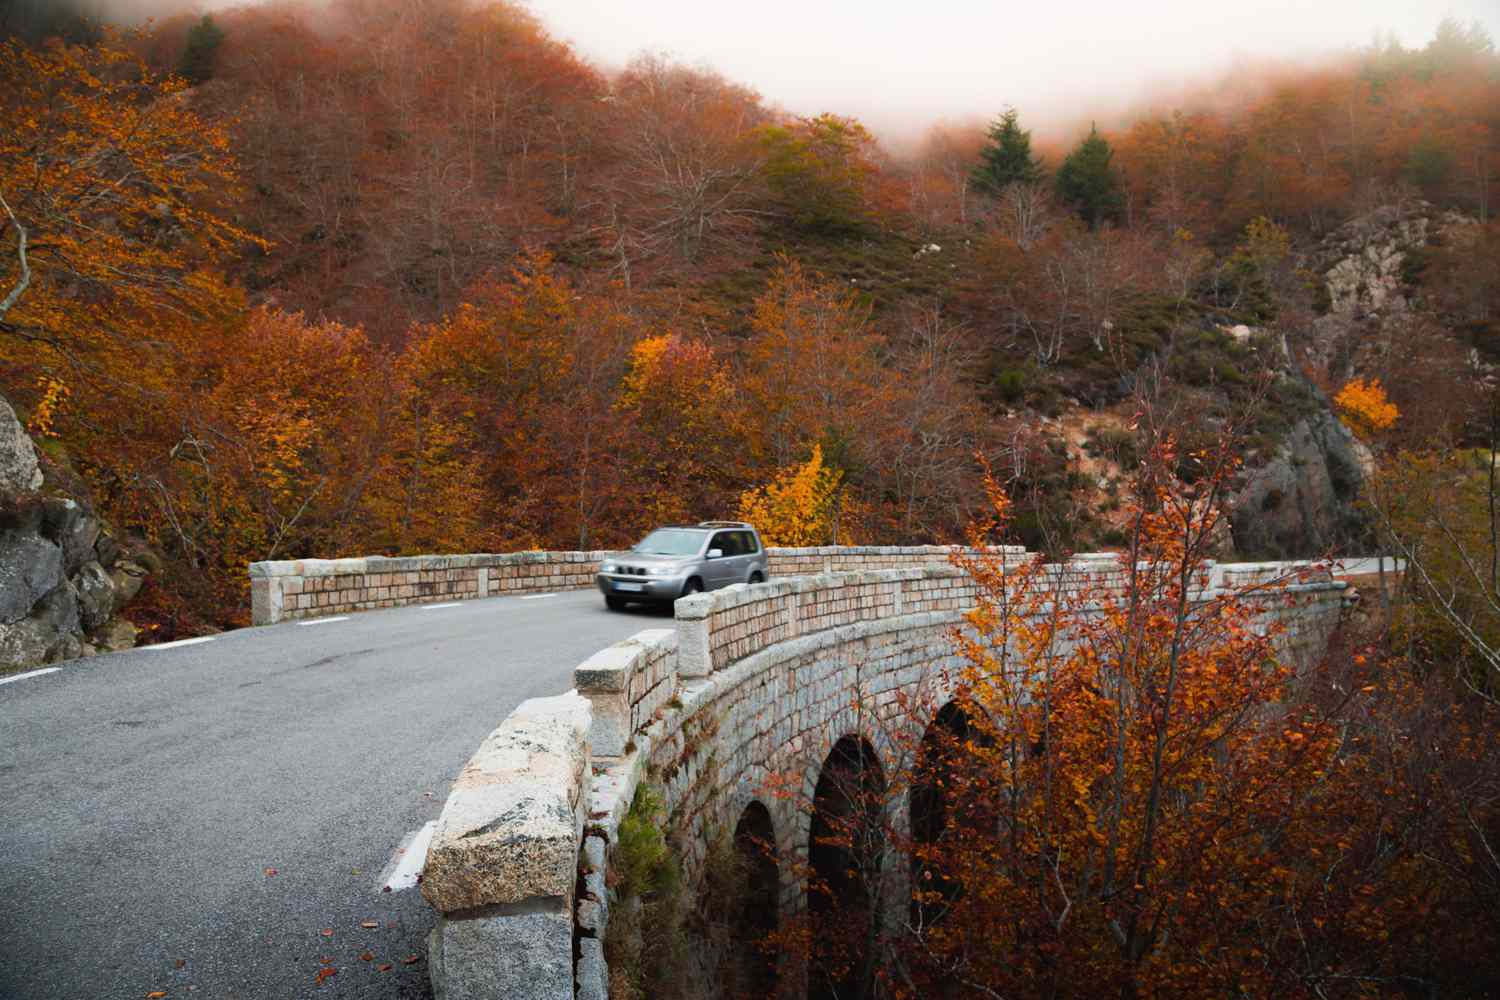 Car driving over a stone bridge surrounded by fall foliage